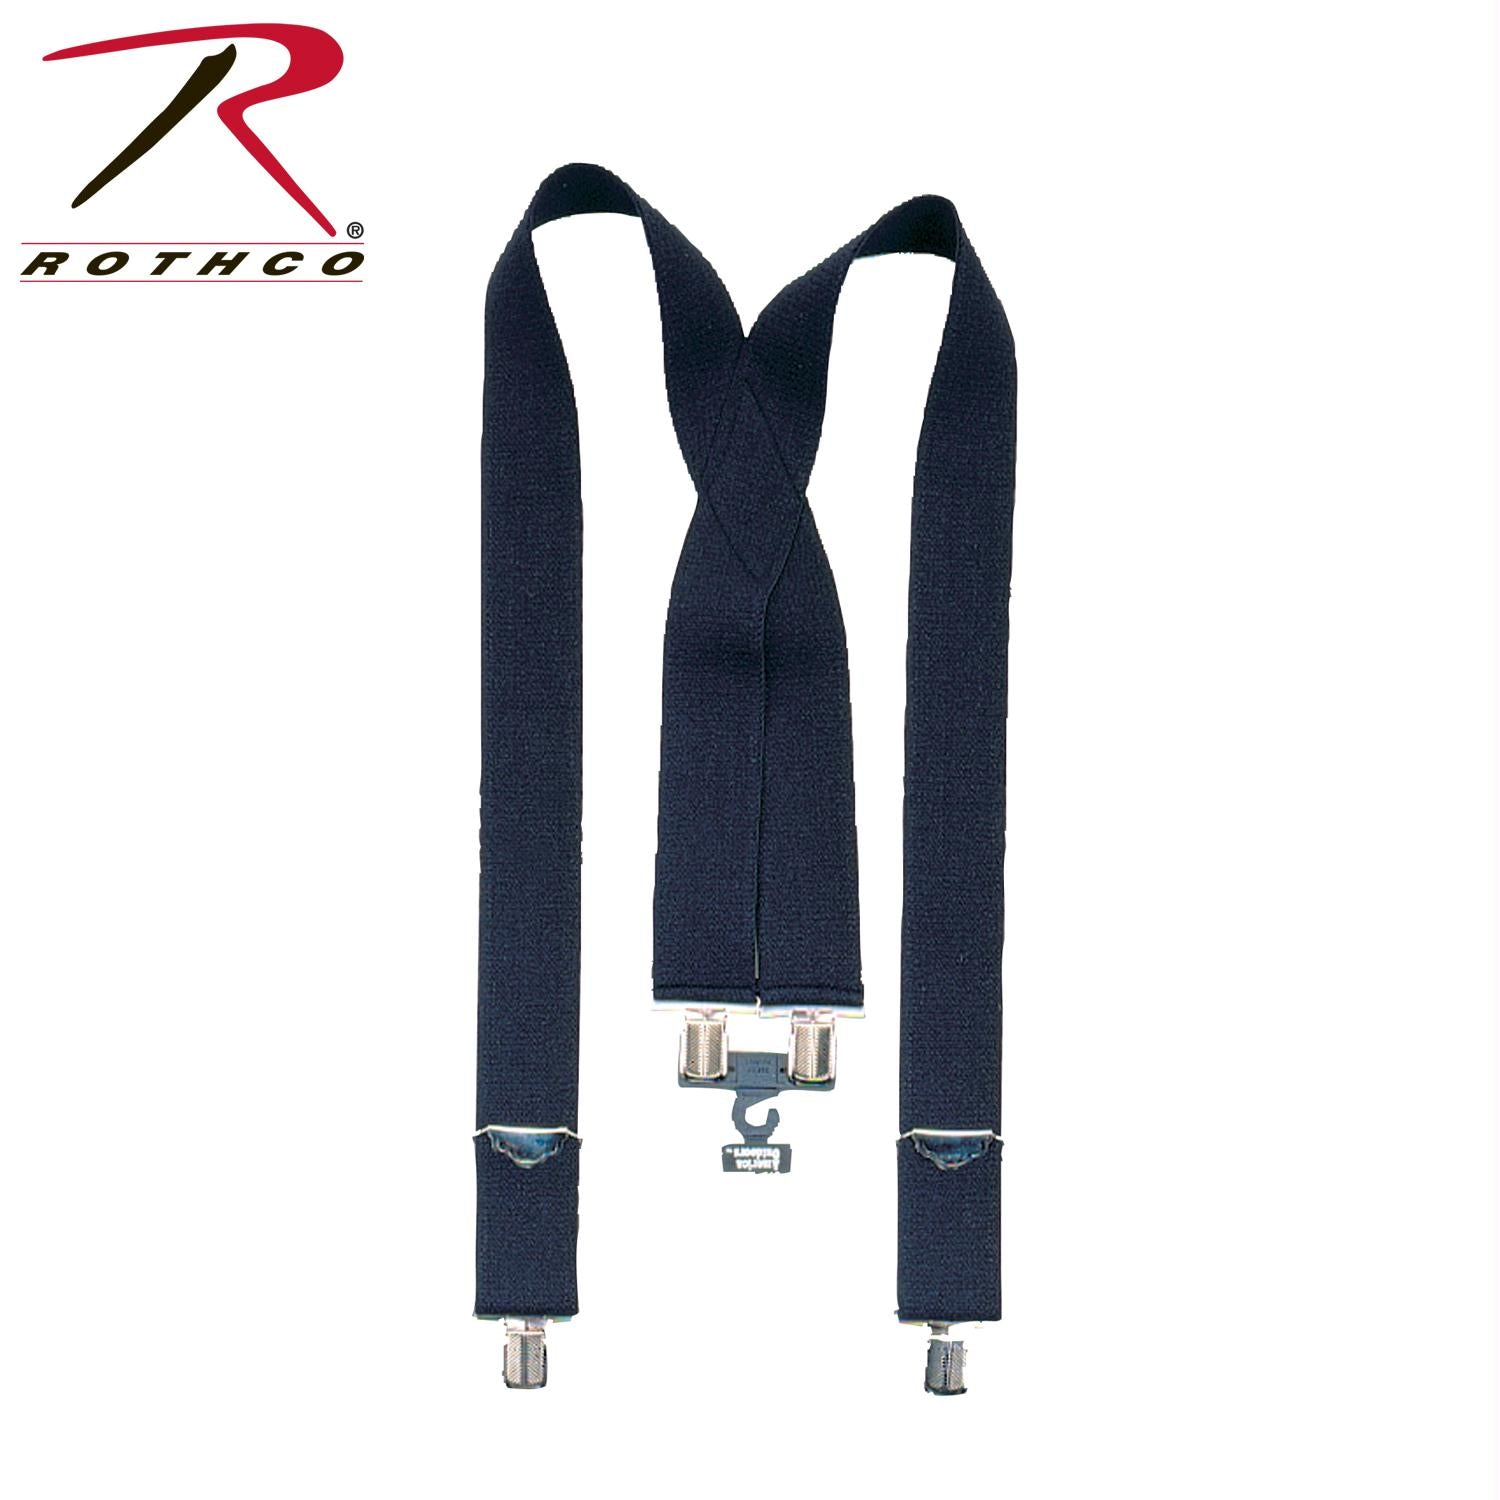 Rothco Pants Suspenders - Black